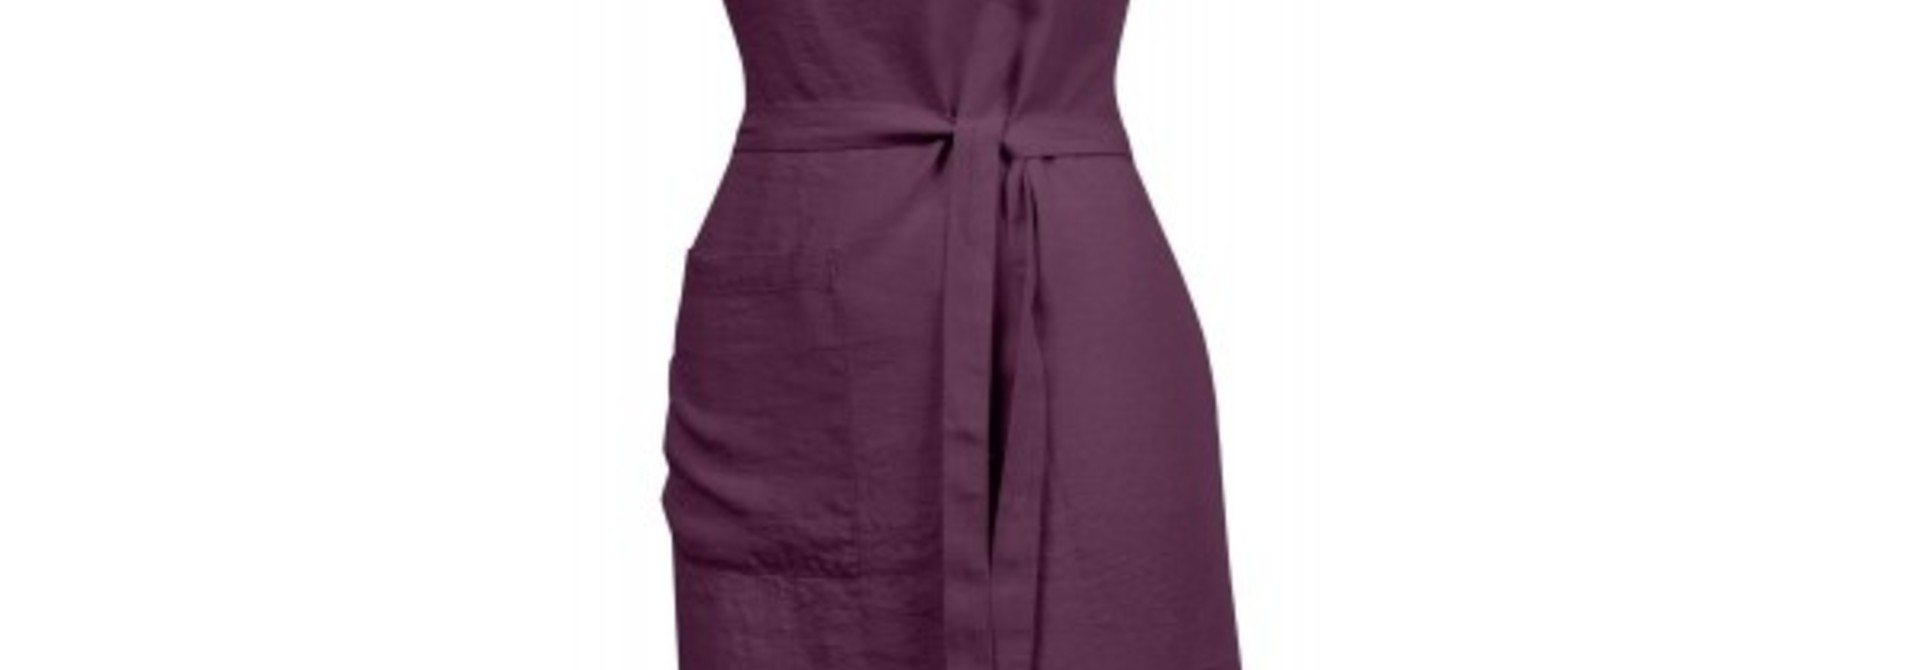 Apron - Nais - Purple